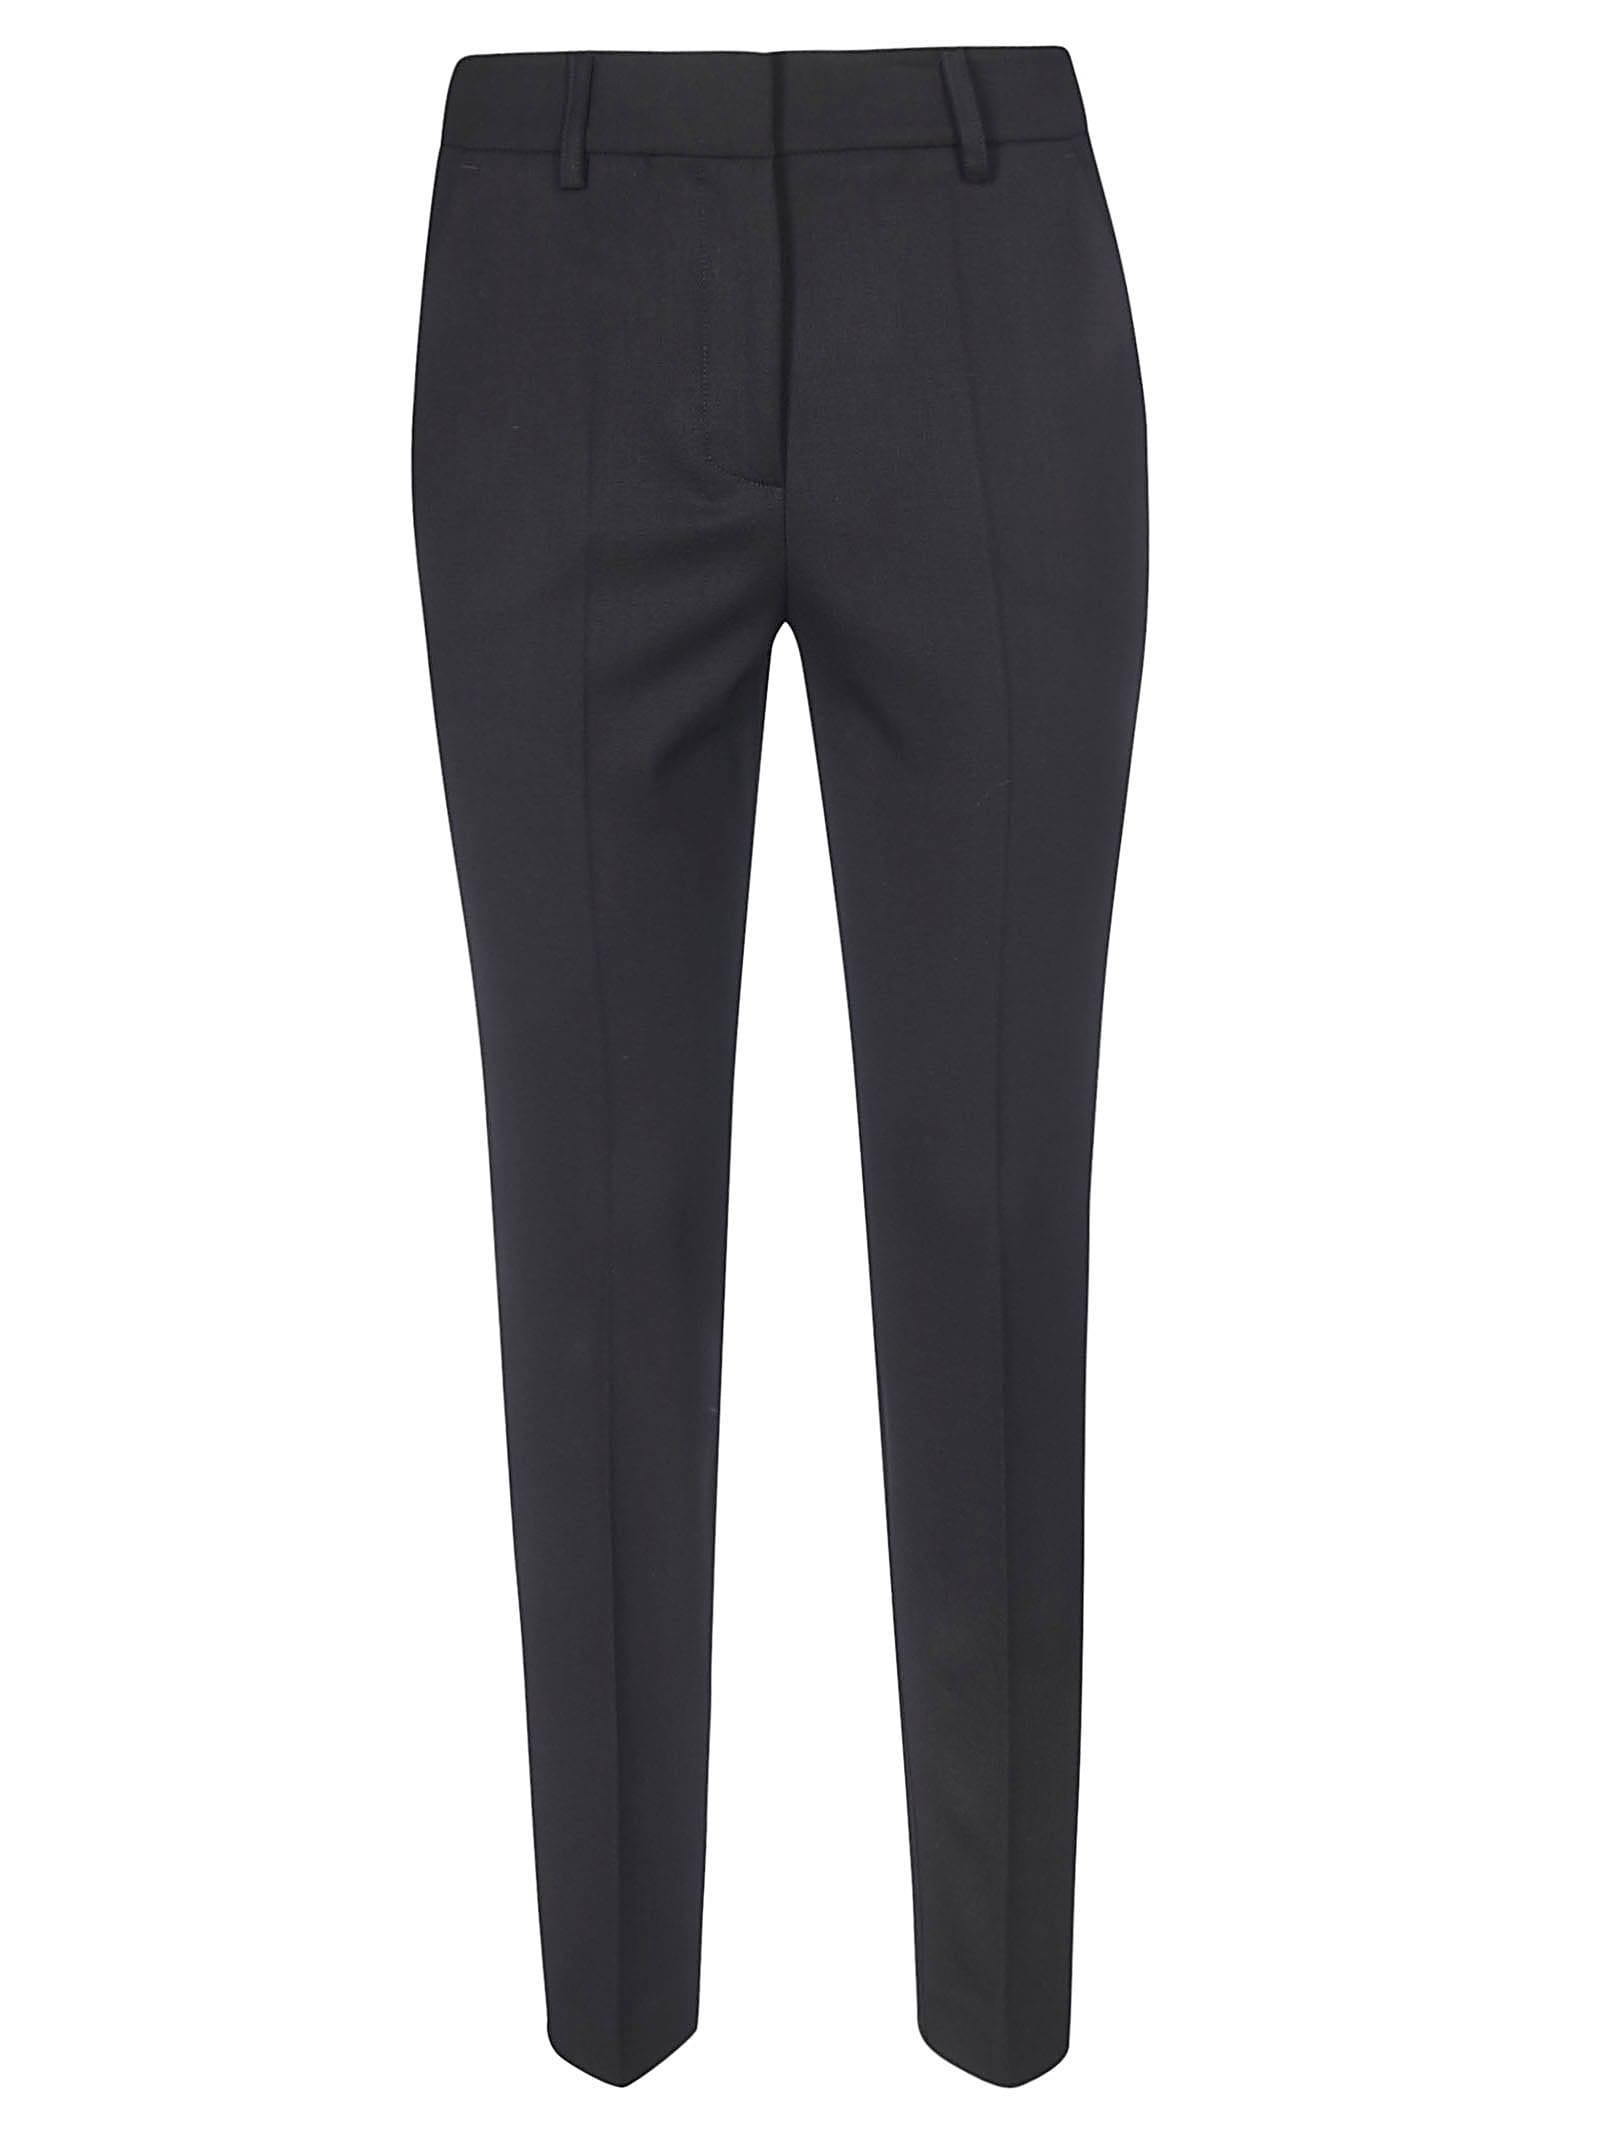 Parosh Thigh Fit Classic Trousers